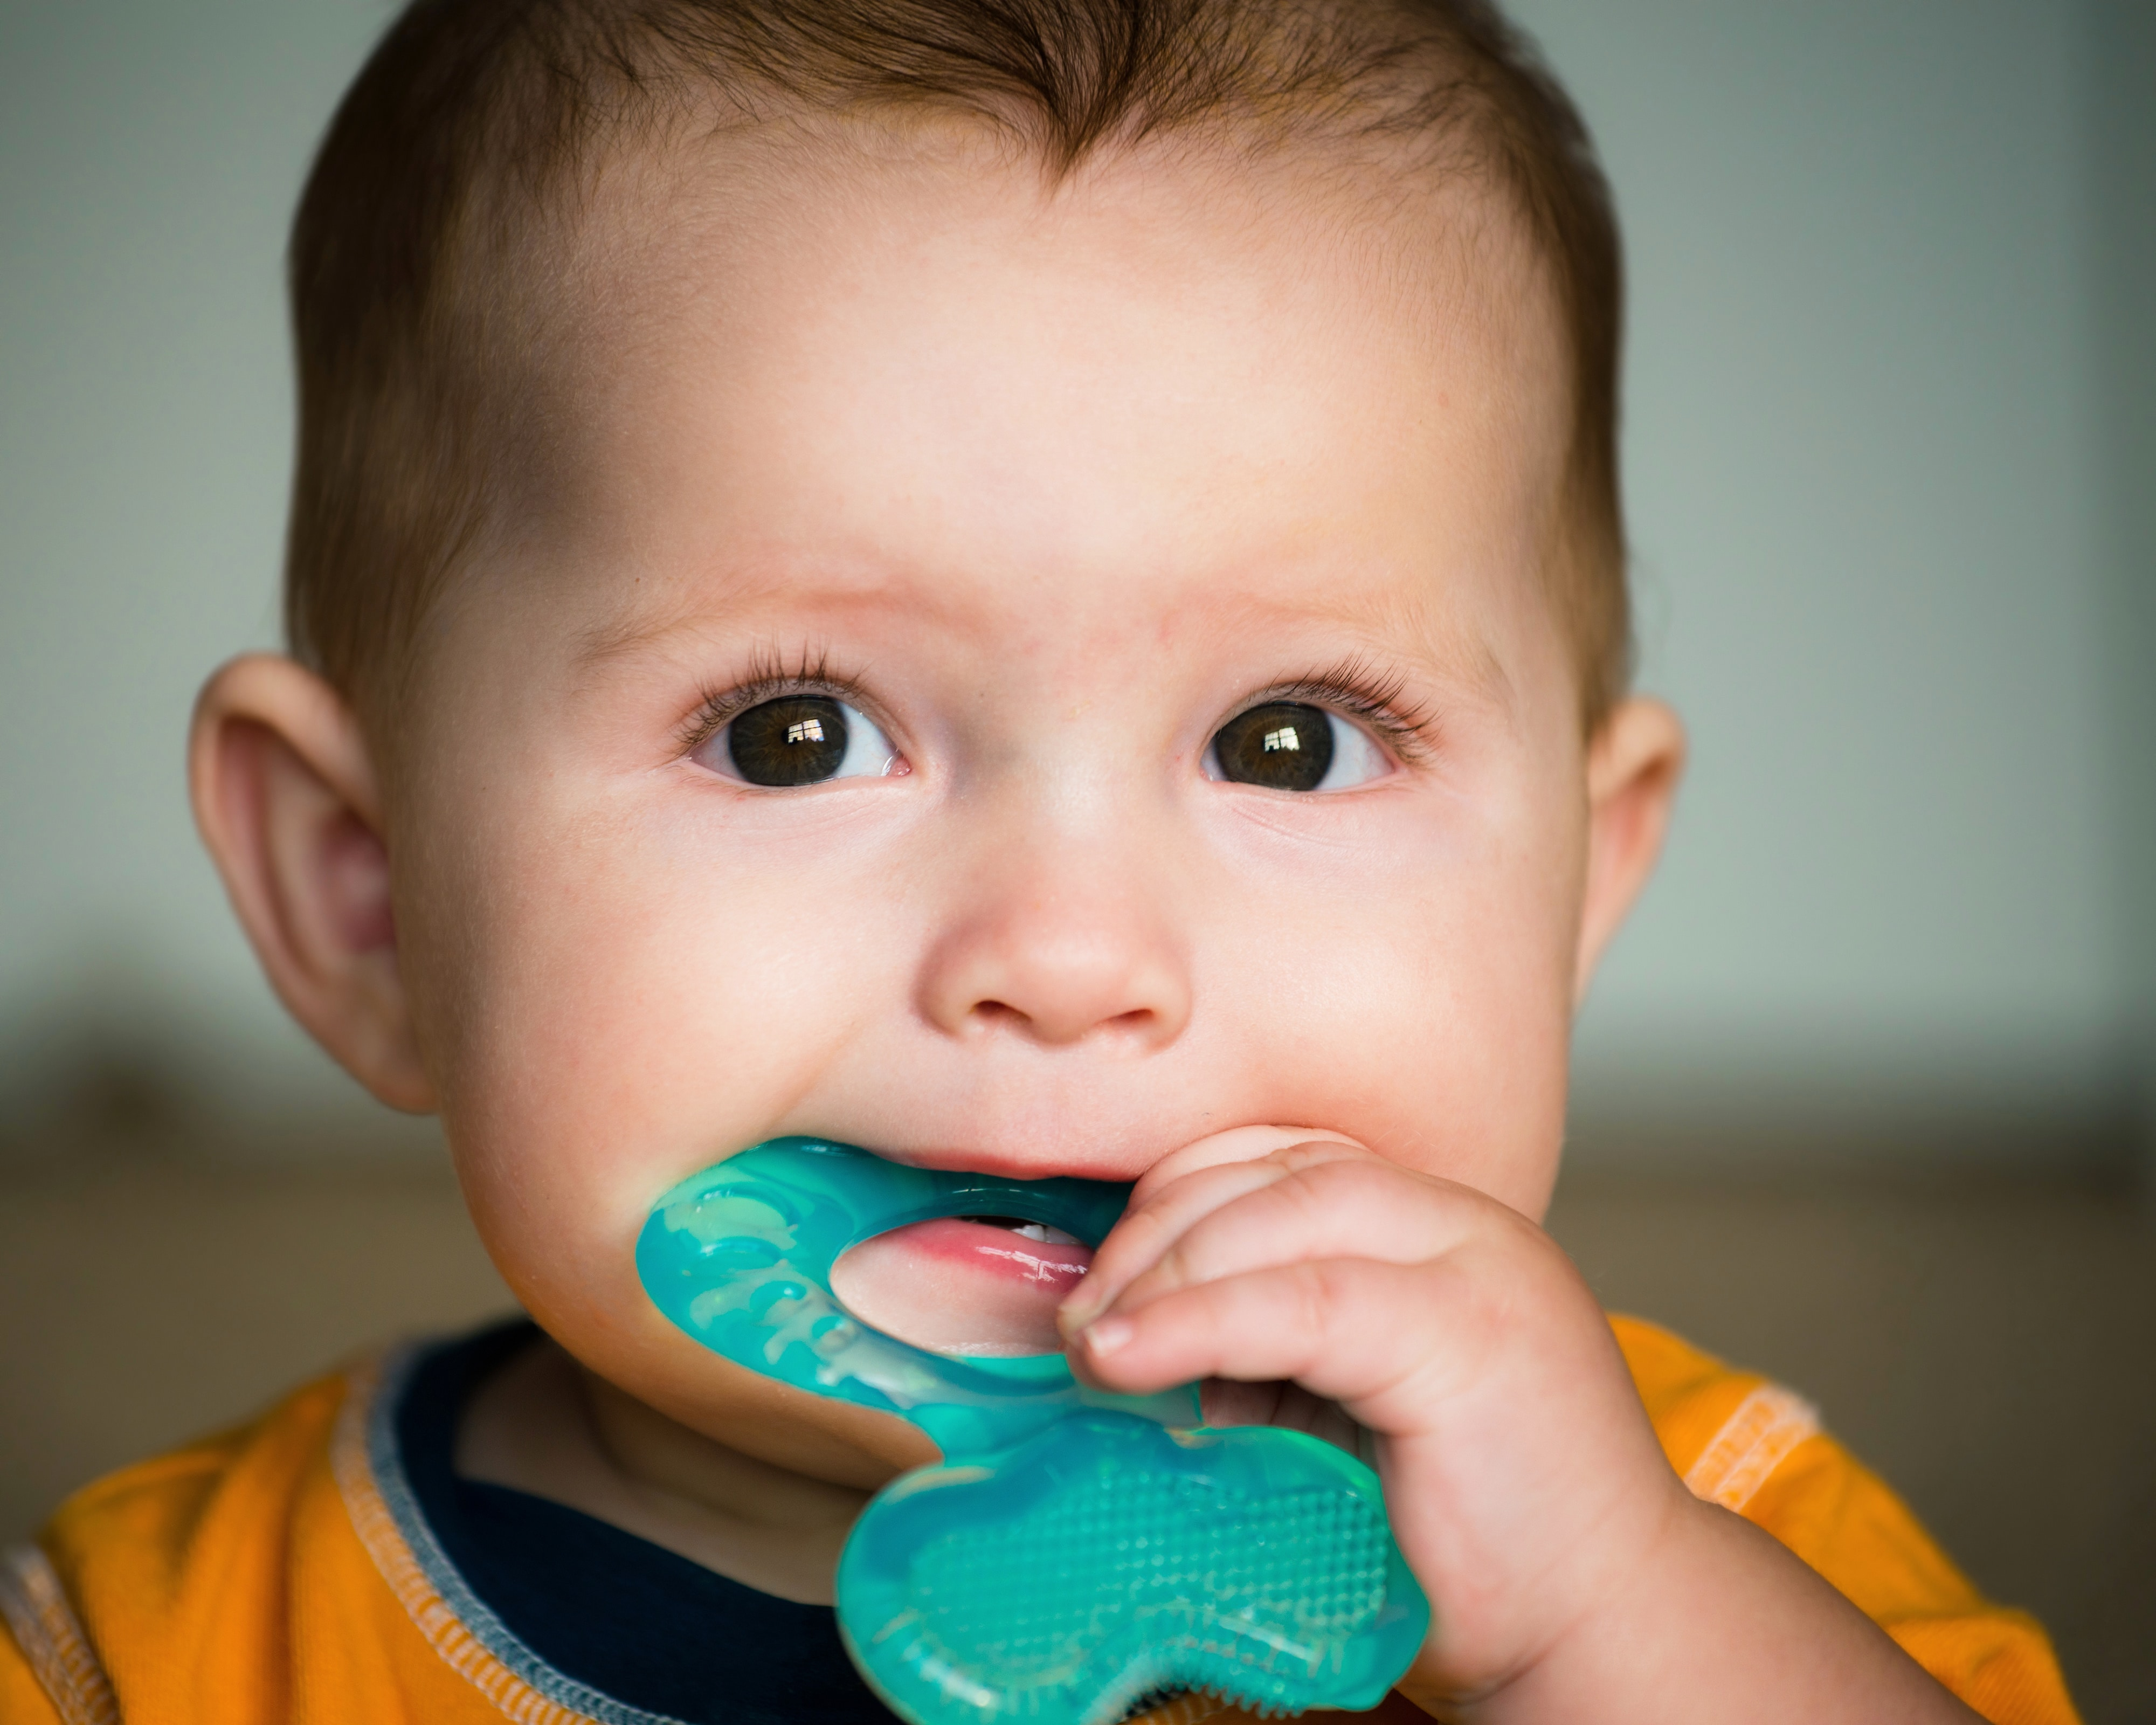 how to help a teething baby: teething remedies from pediatricians